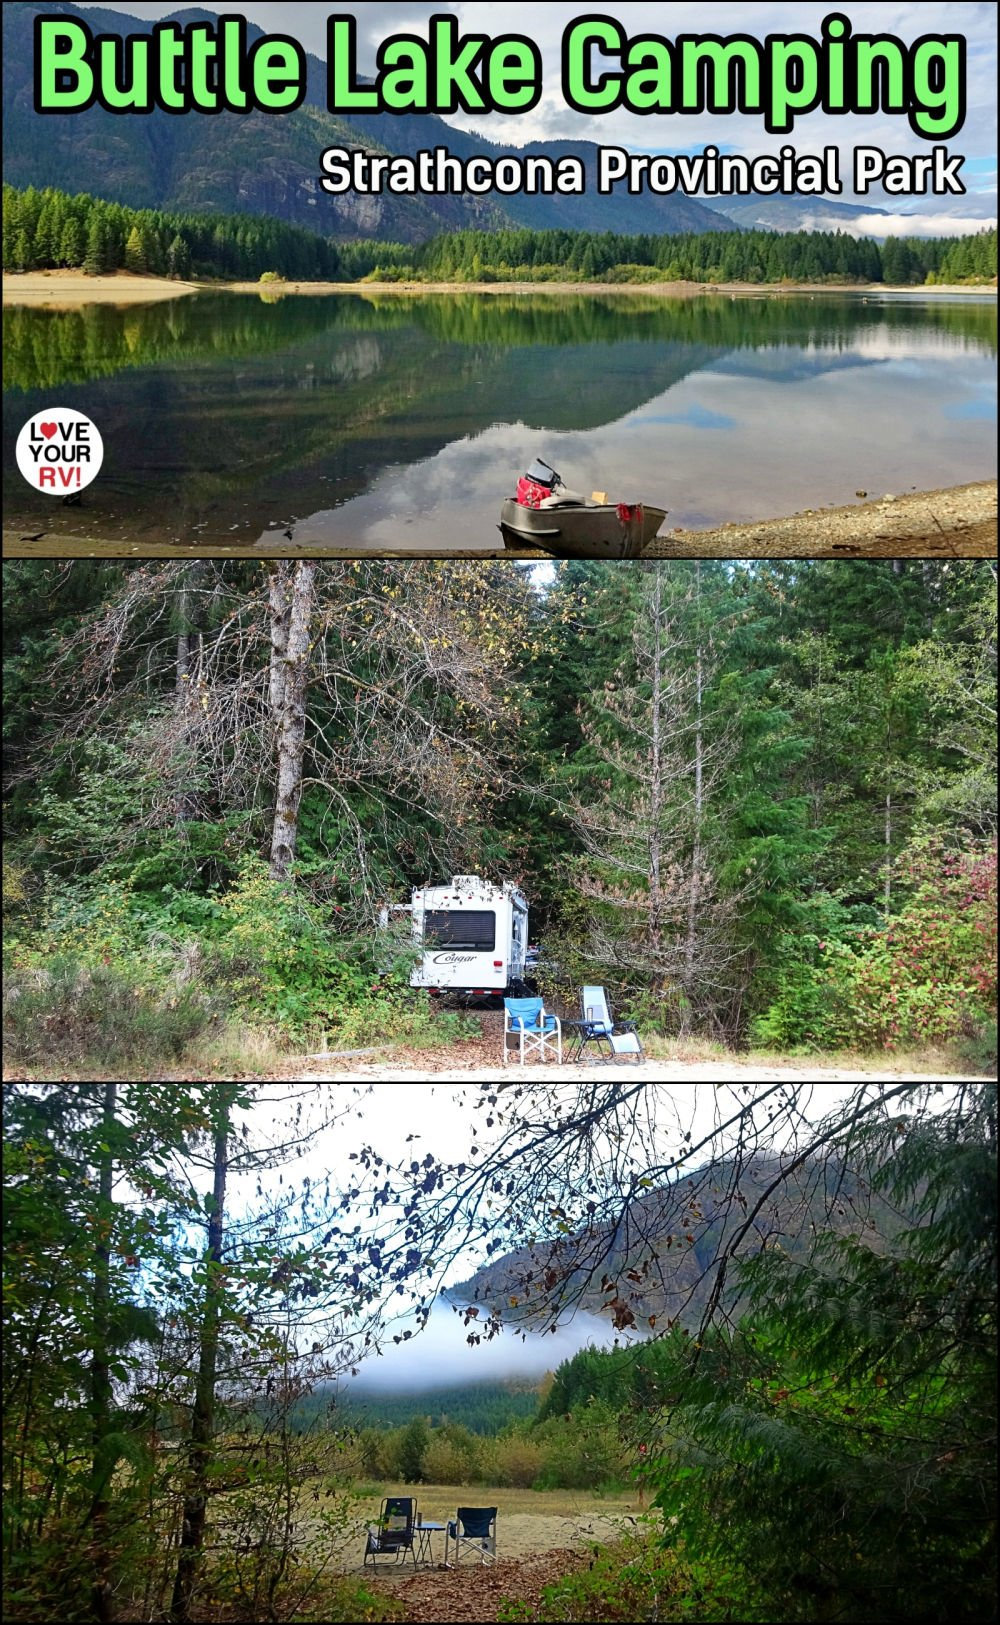 Hiking and Camping at Buttle Lake in Strathcona Provincial Park on Vancouver Island British Columbia Canada